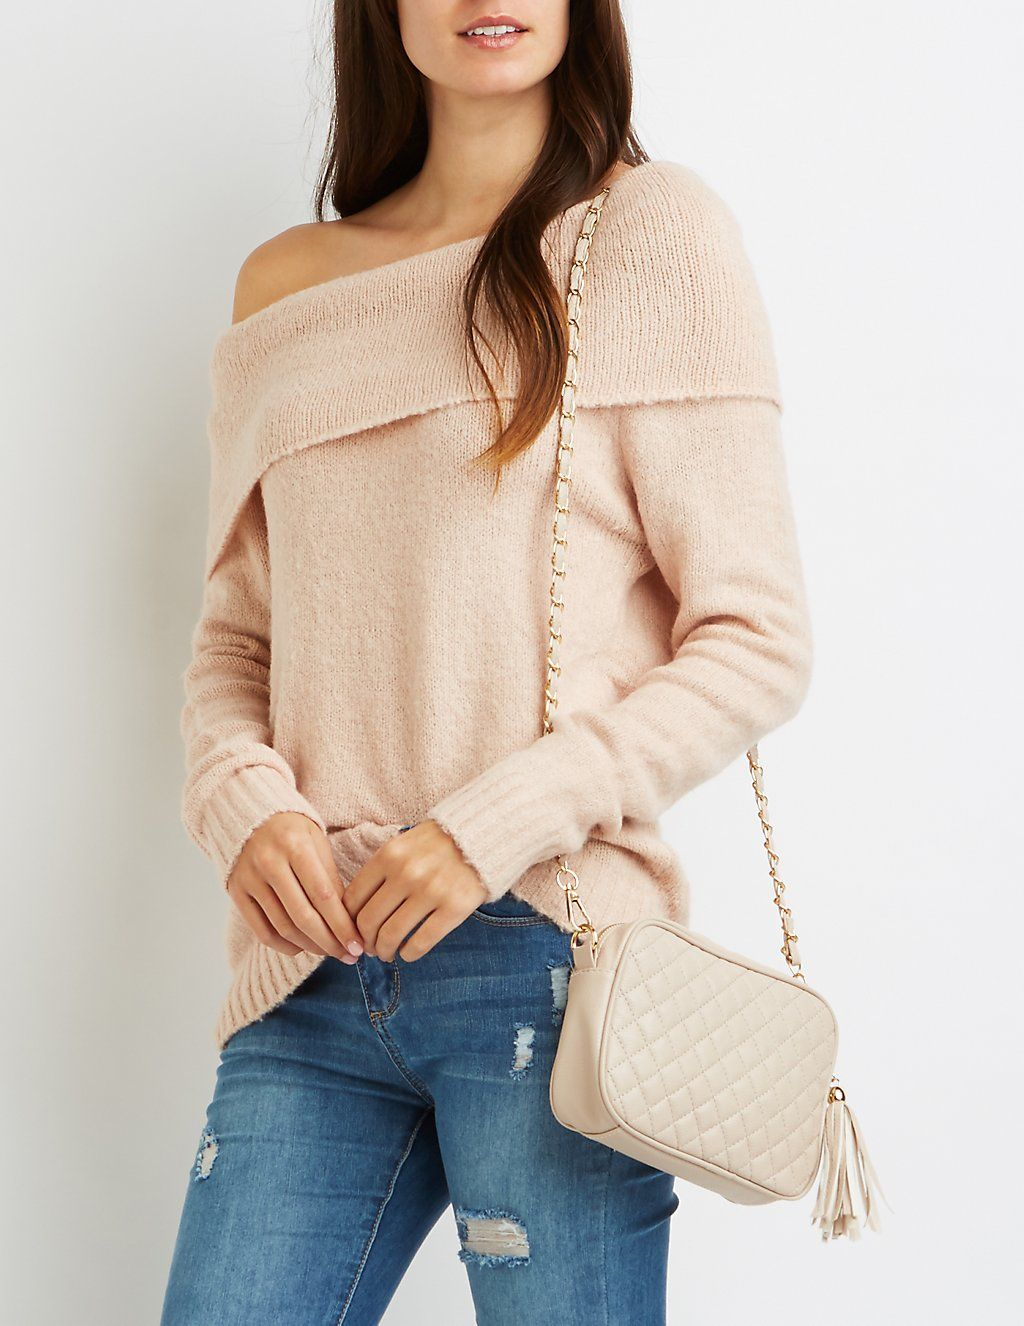 Cowl Neck Off The Shoulder Sweater Wish List Sweaters Cowl Neck